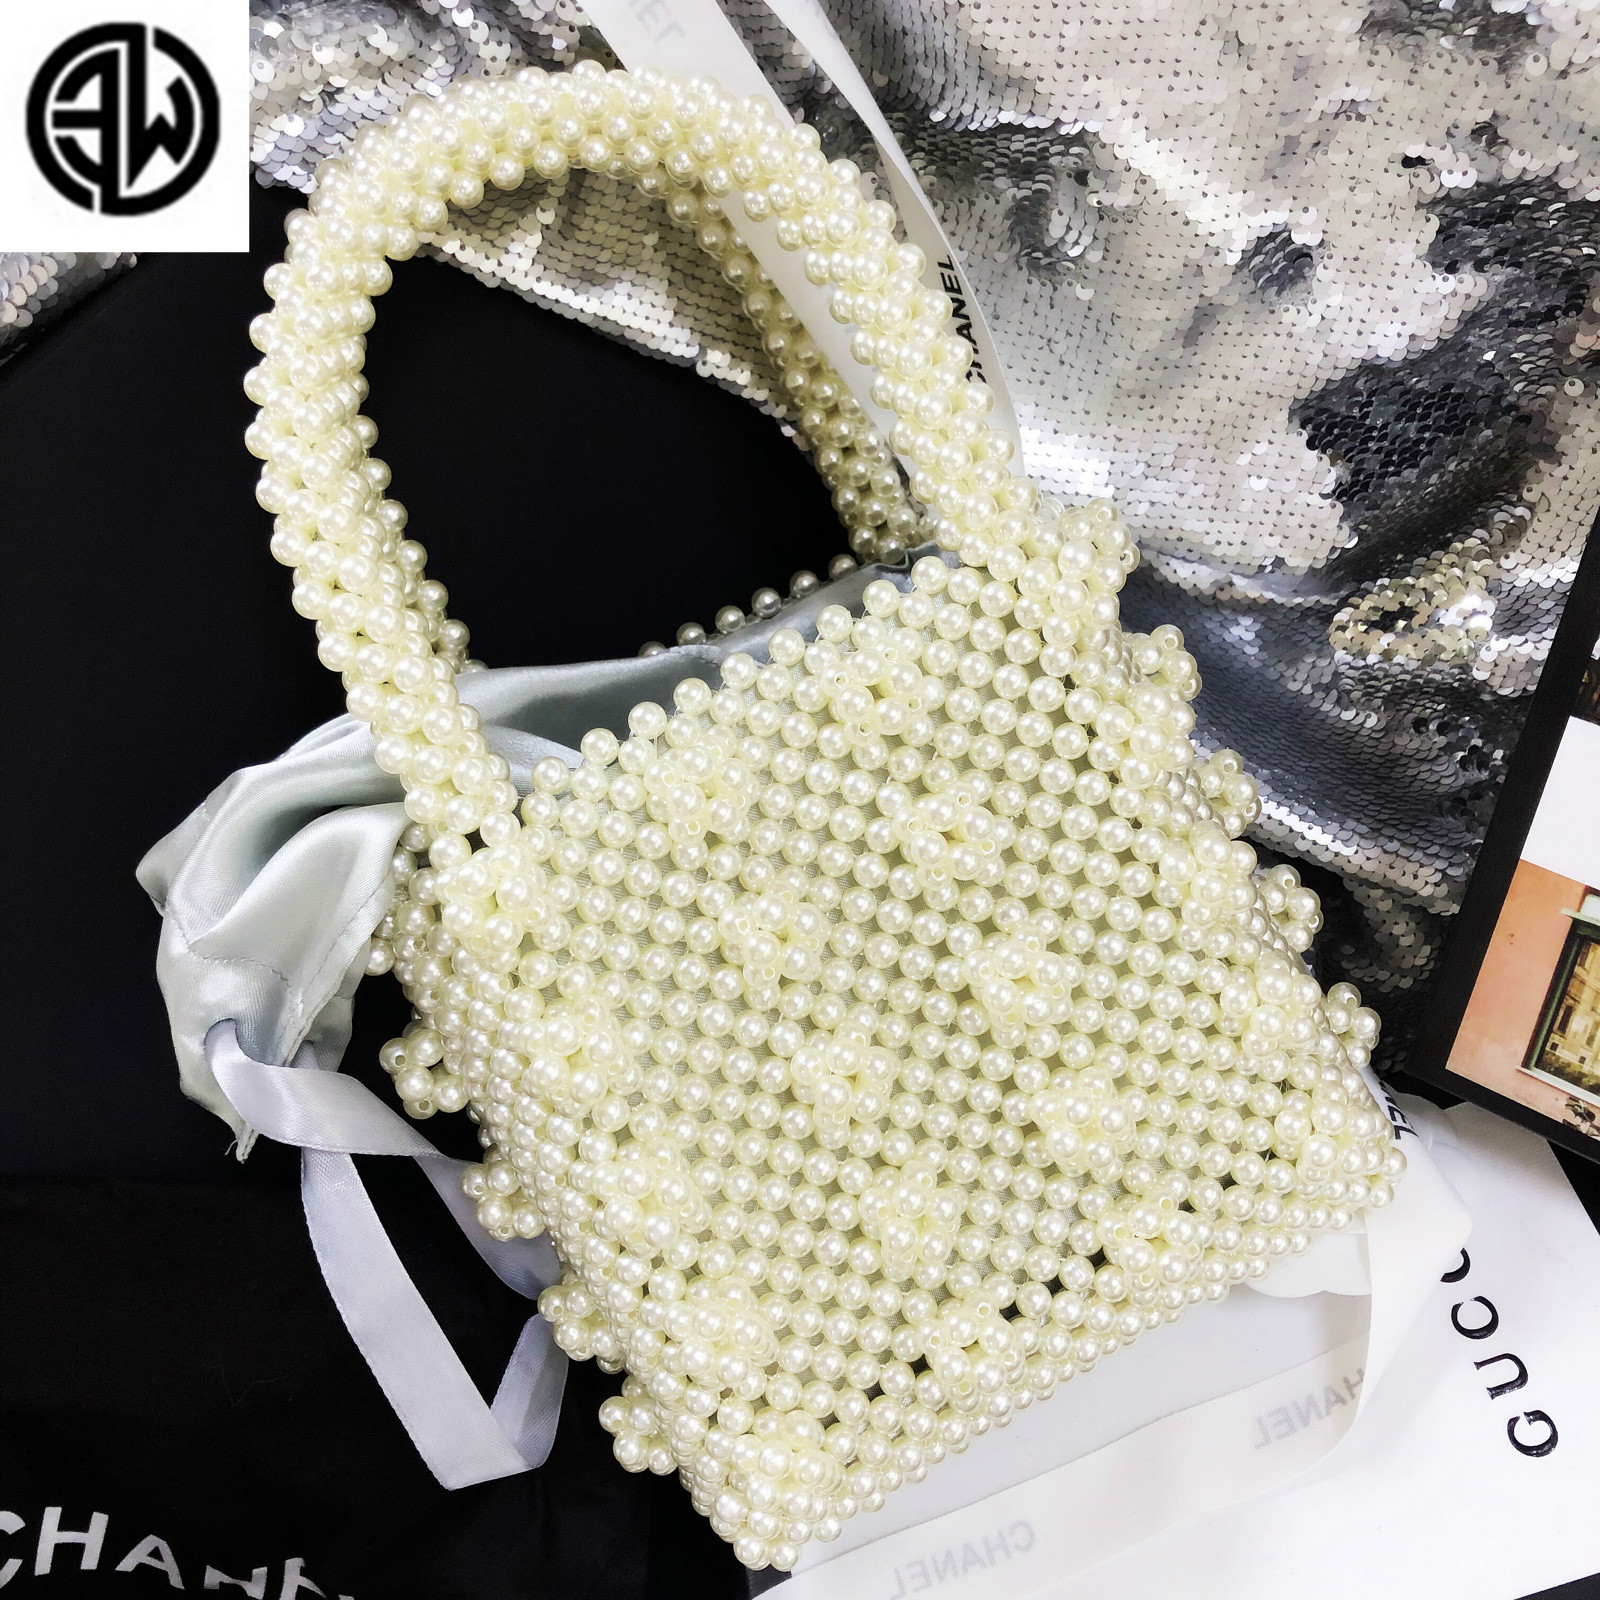 Luxury Beaded Pearl Women Crossbody Bag Hand Made Party Evening Bag Mobile Phone Woven Shoulder Messenger Bag luis vuiton gg bag pearl beaded shoulder top